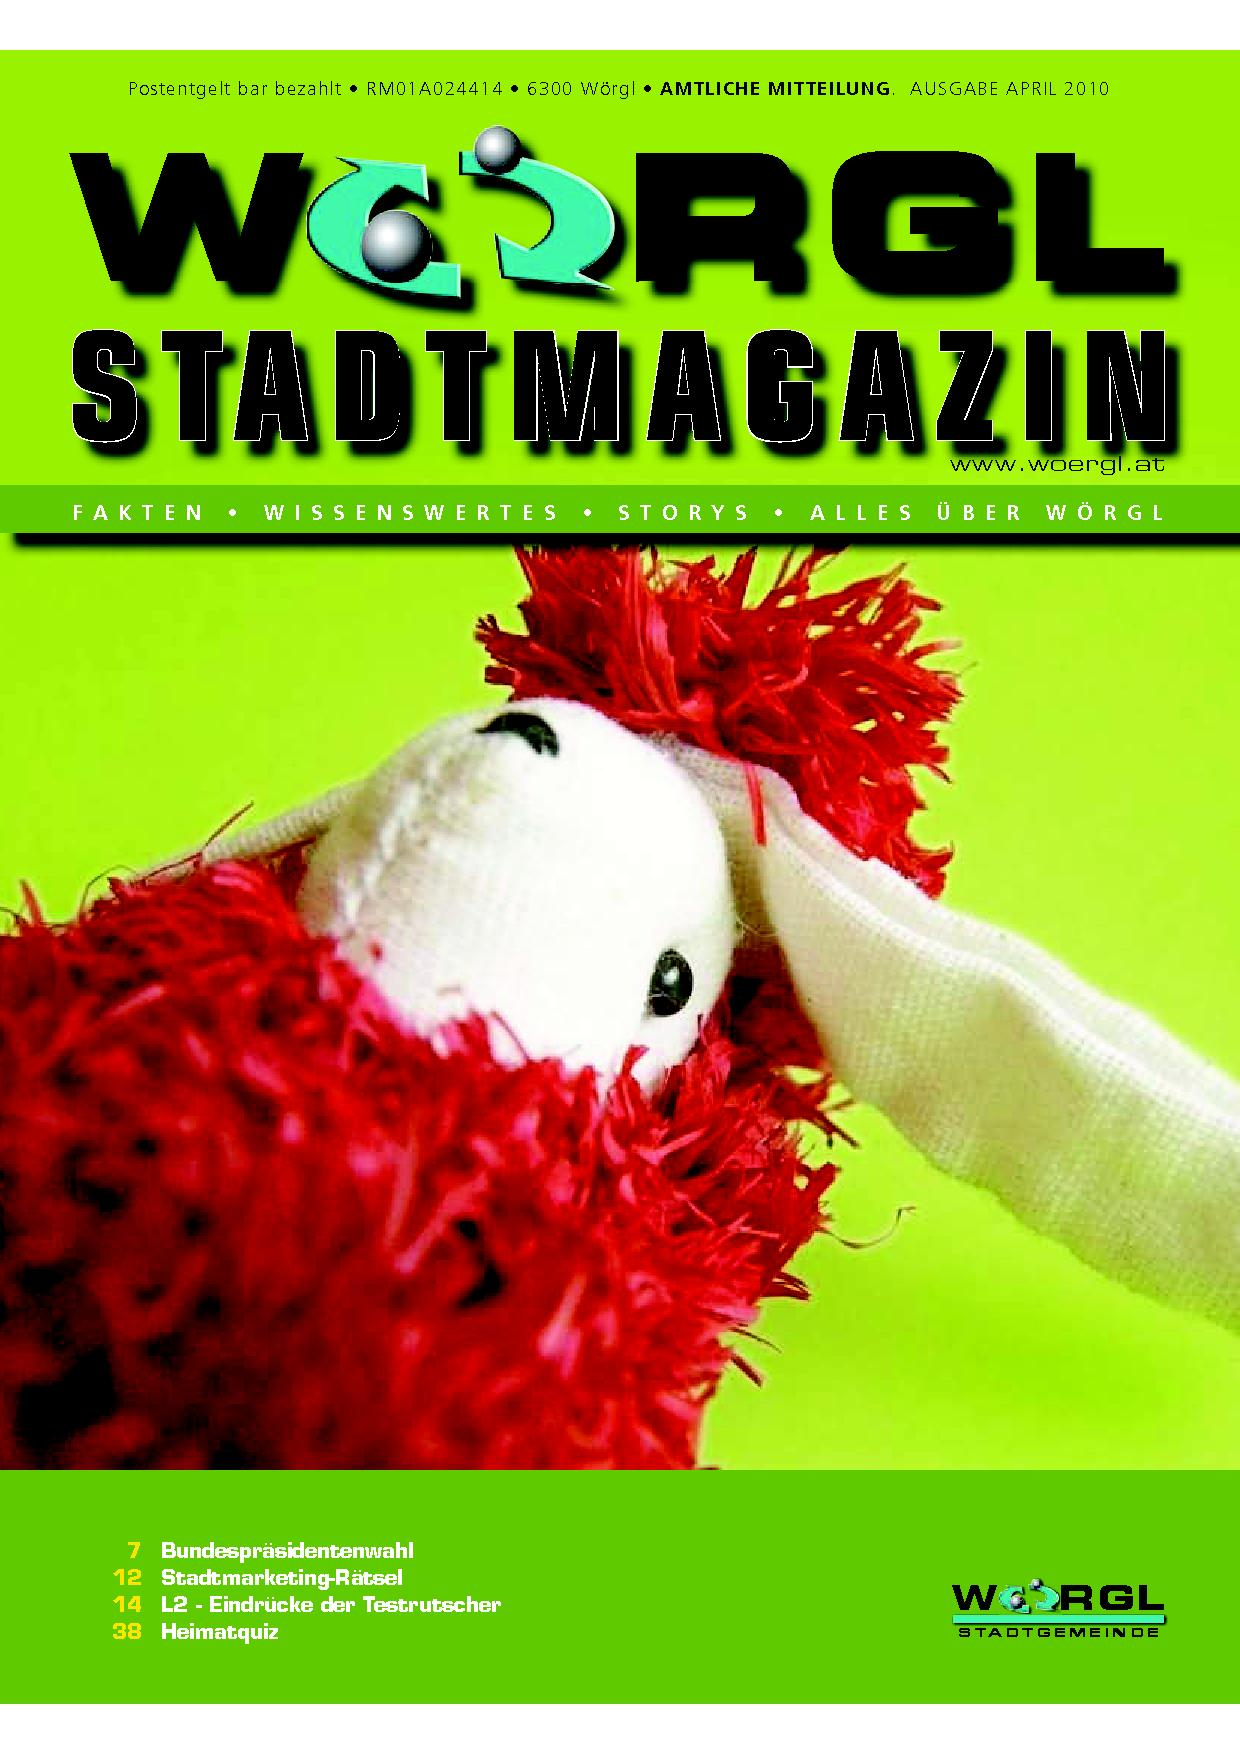 Wörgler Stadtmagazin April 2010